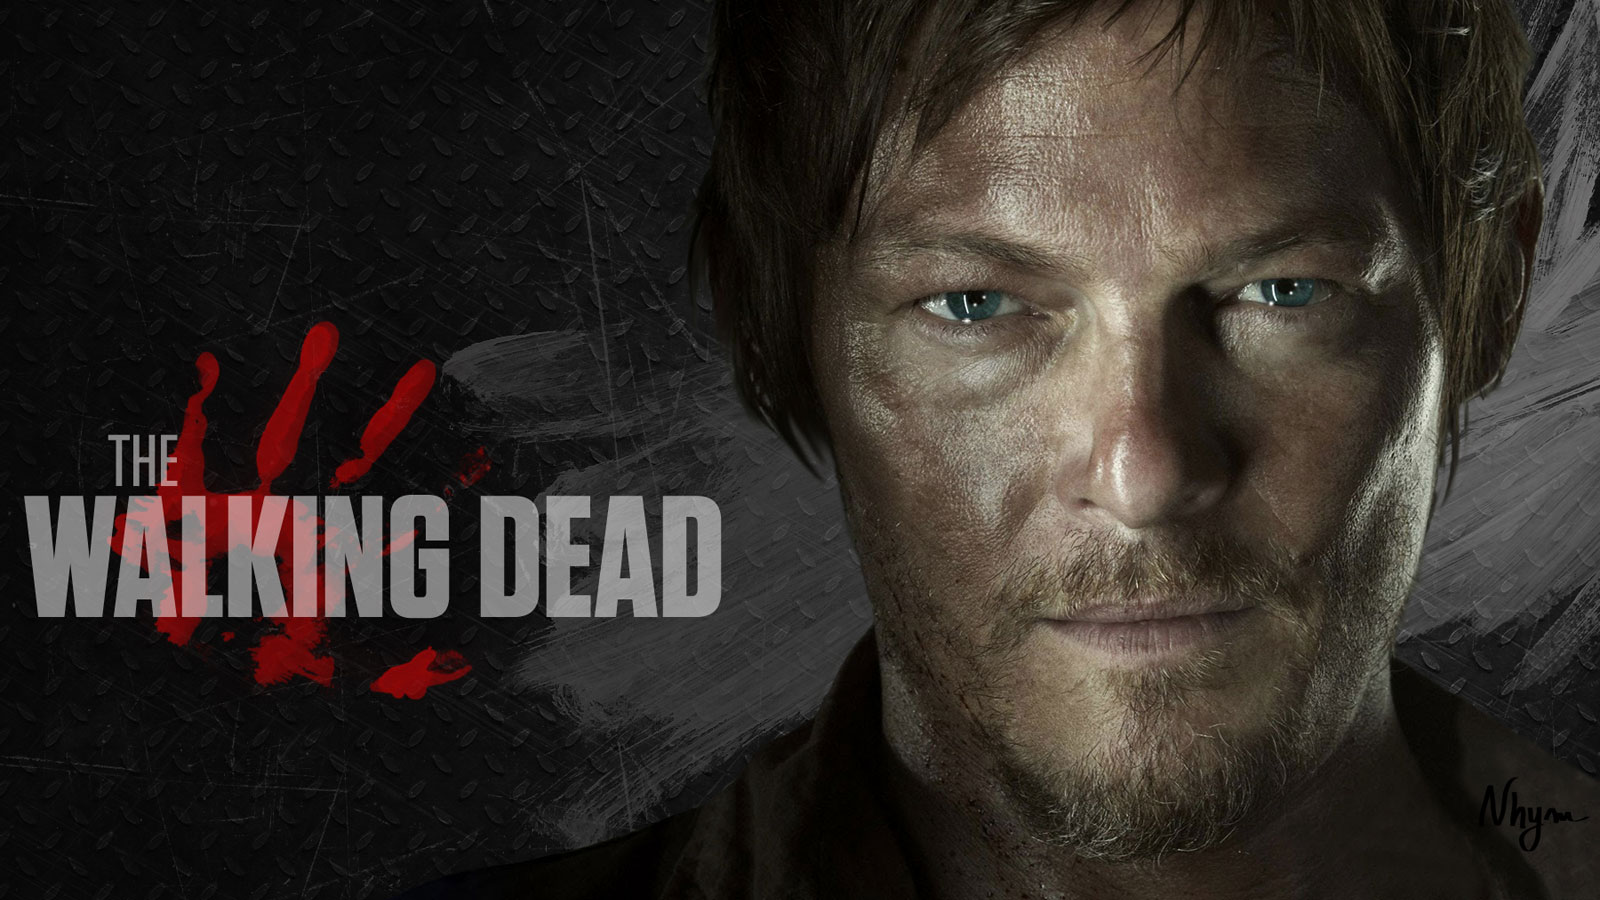 The Walking Dead Wallpapers: The Walking Dead Wallpaper And Background Image